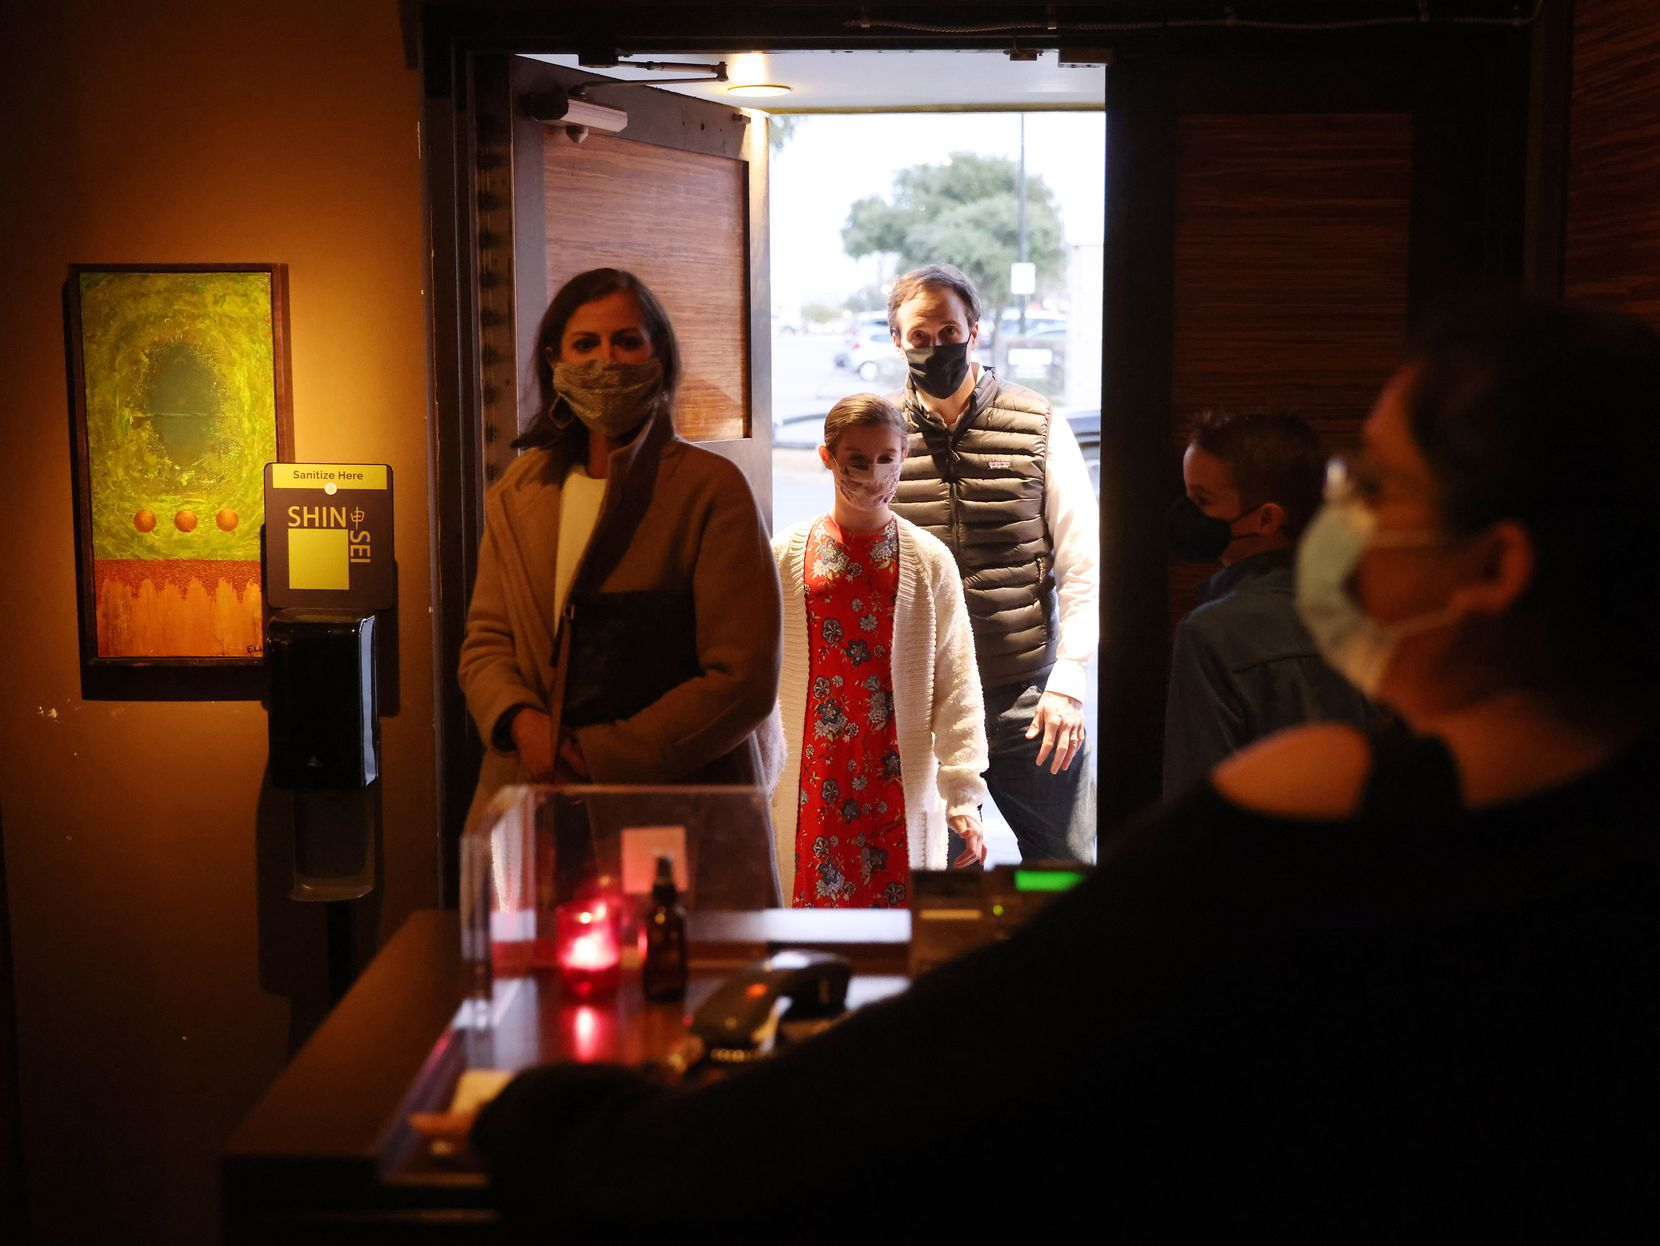 (From l to r) Kelsey Phillips, Saylor Phillips, 10, Chandler Phillips and Ford Phillips, 11, prepare to check in with Daniela Vazquez as they make their way inside Shinsei Restaurant to celebrate Ford's birthday on Tuesday, January 26, 2021 in Dallas.